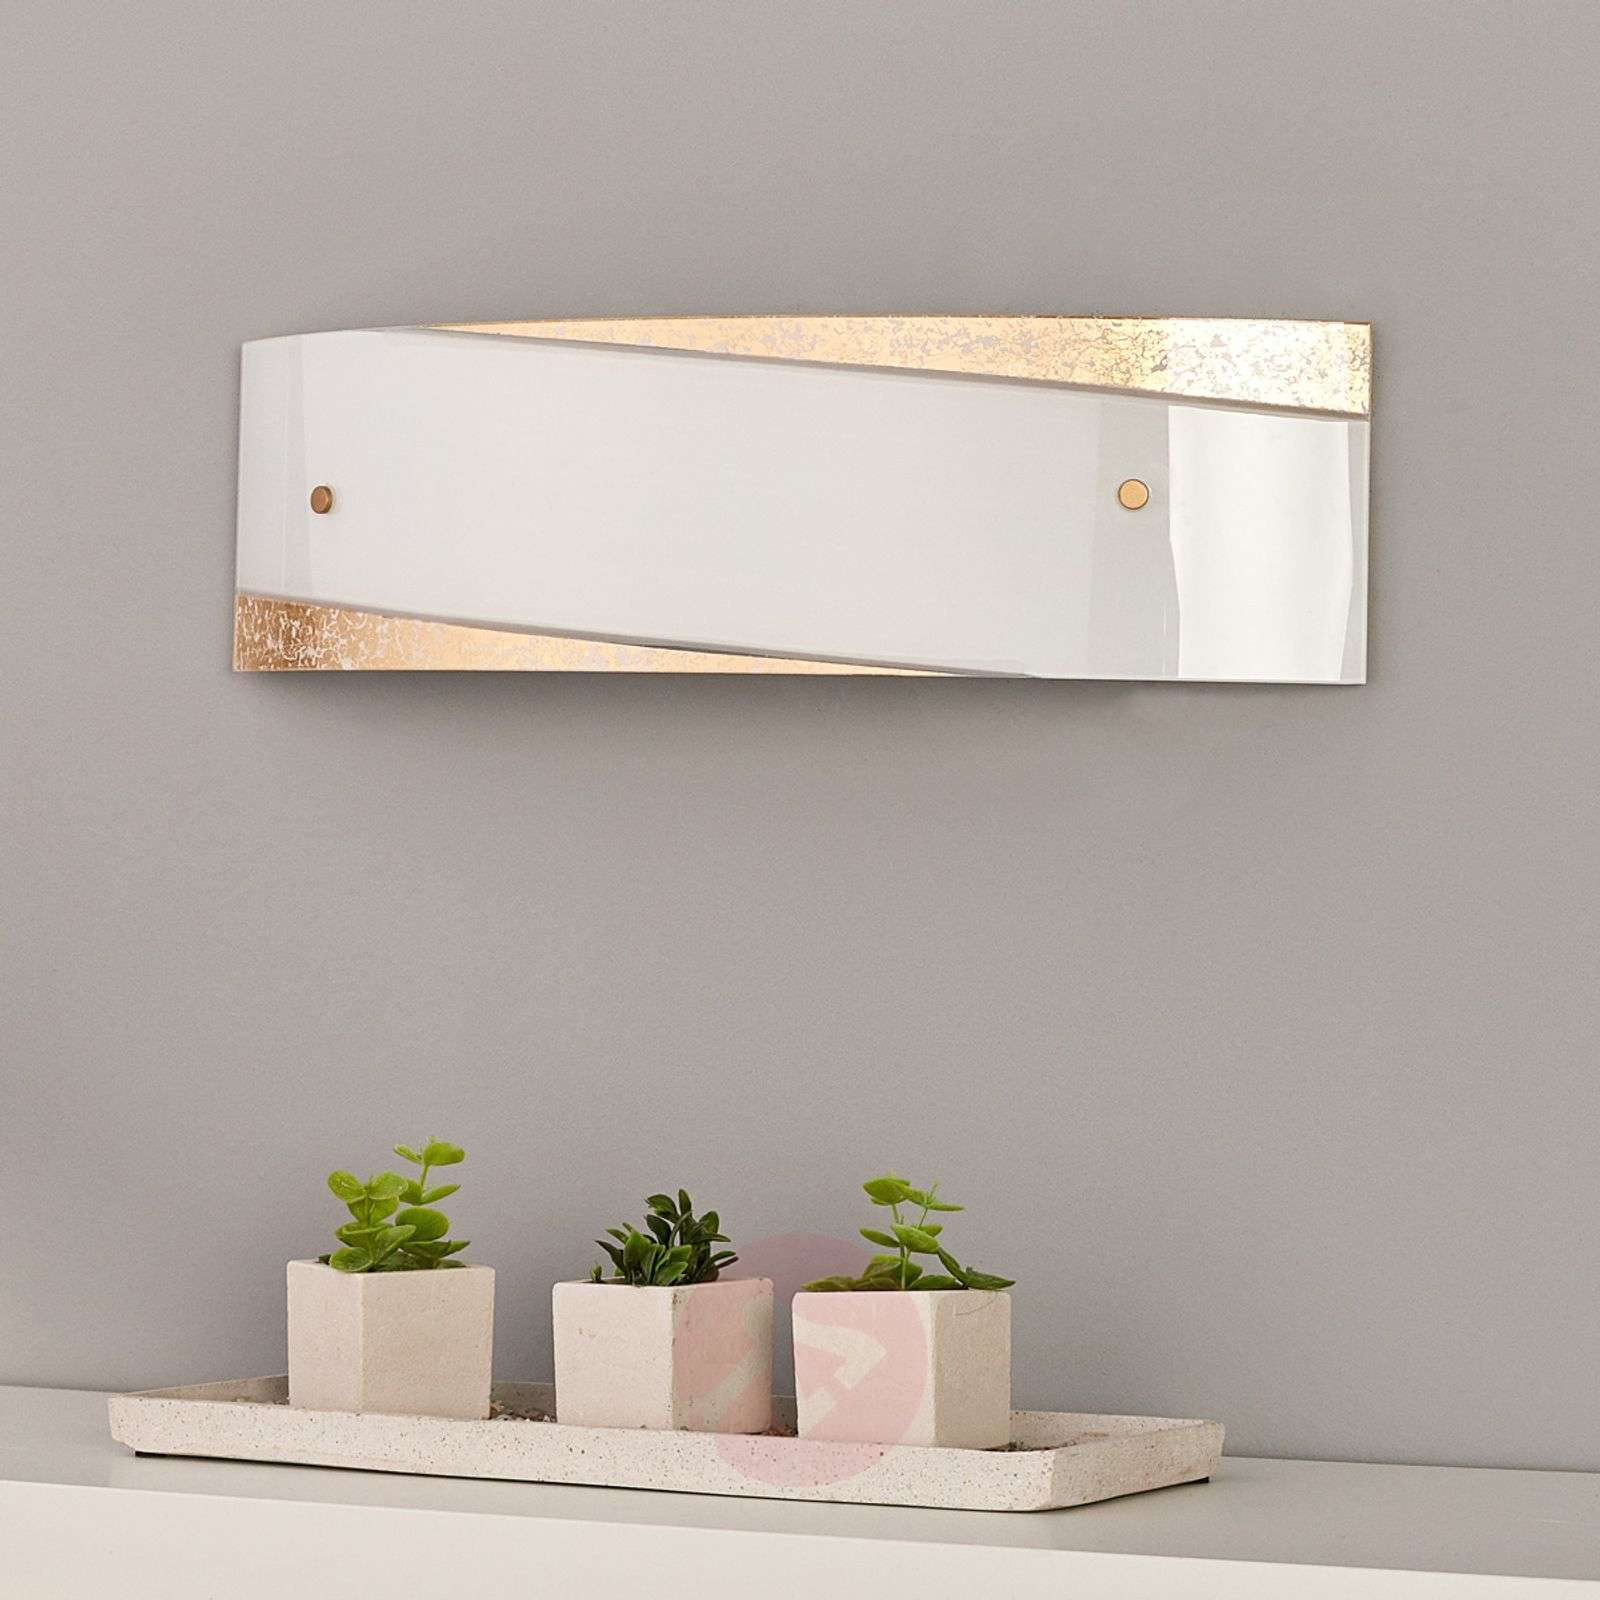 Beatrice wall lamp with gold-coloured decor-9625058-01